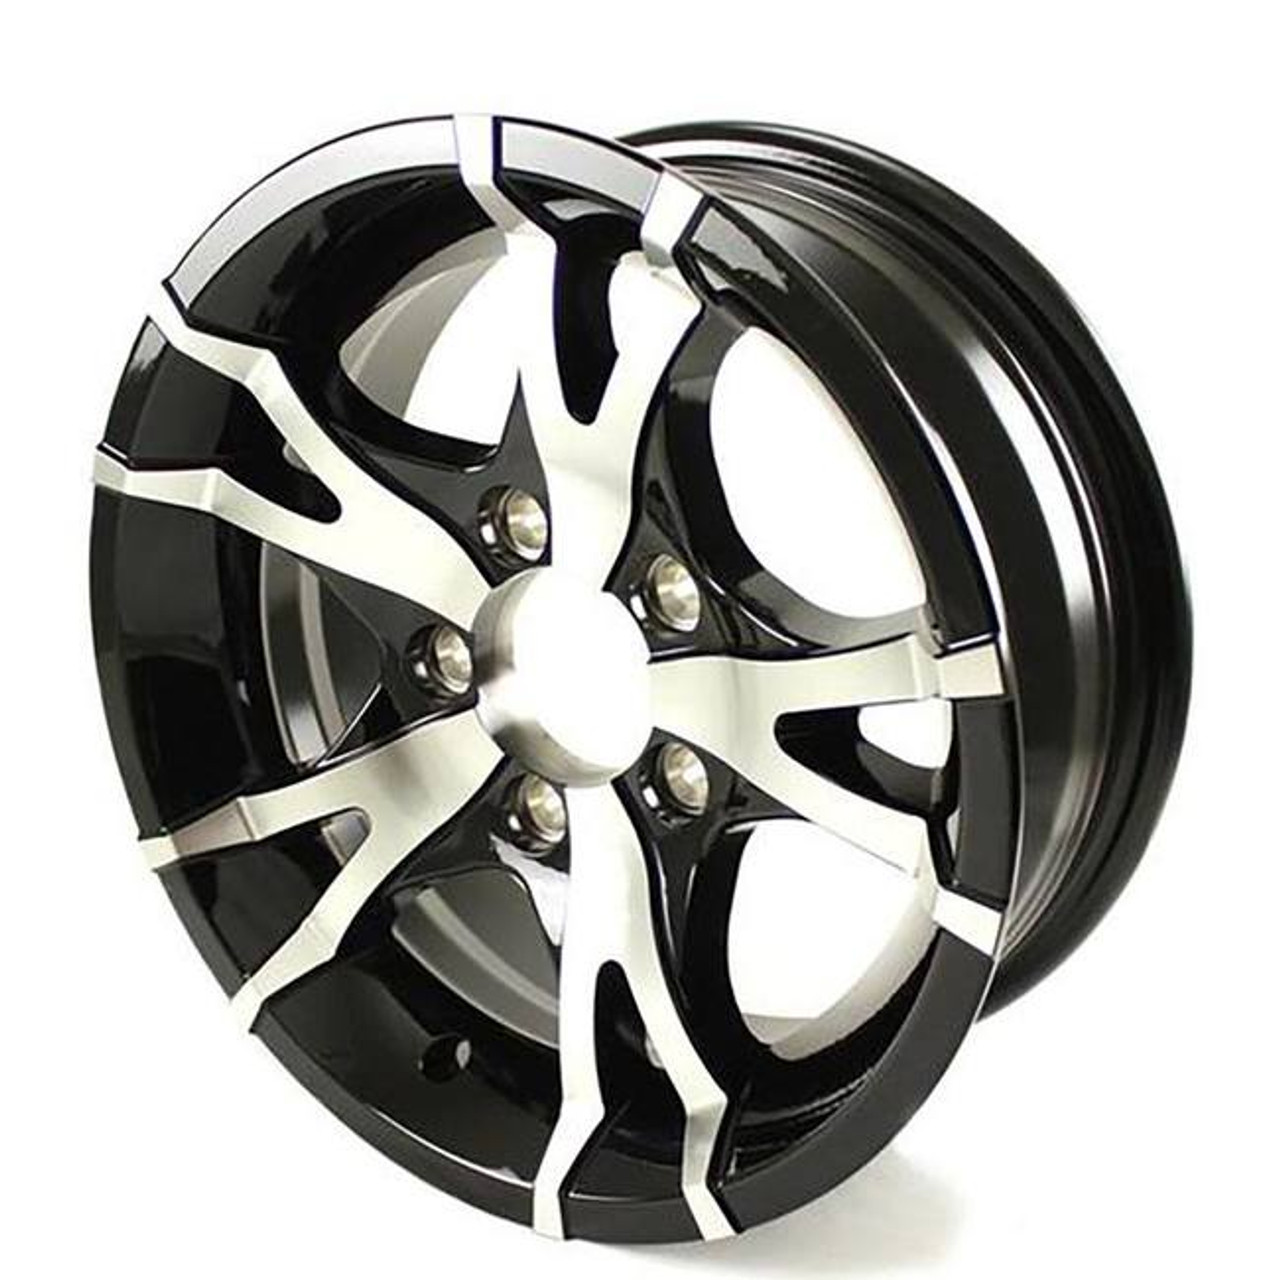 "14X5.5 5-Lug on 4.5"" Aluminum T07 Trailer Wheel - Black - T07-45545BM"